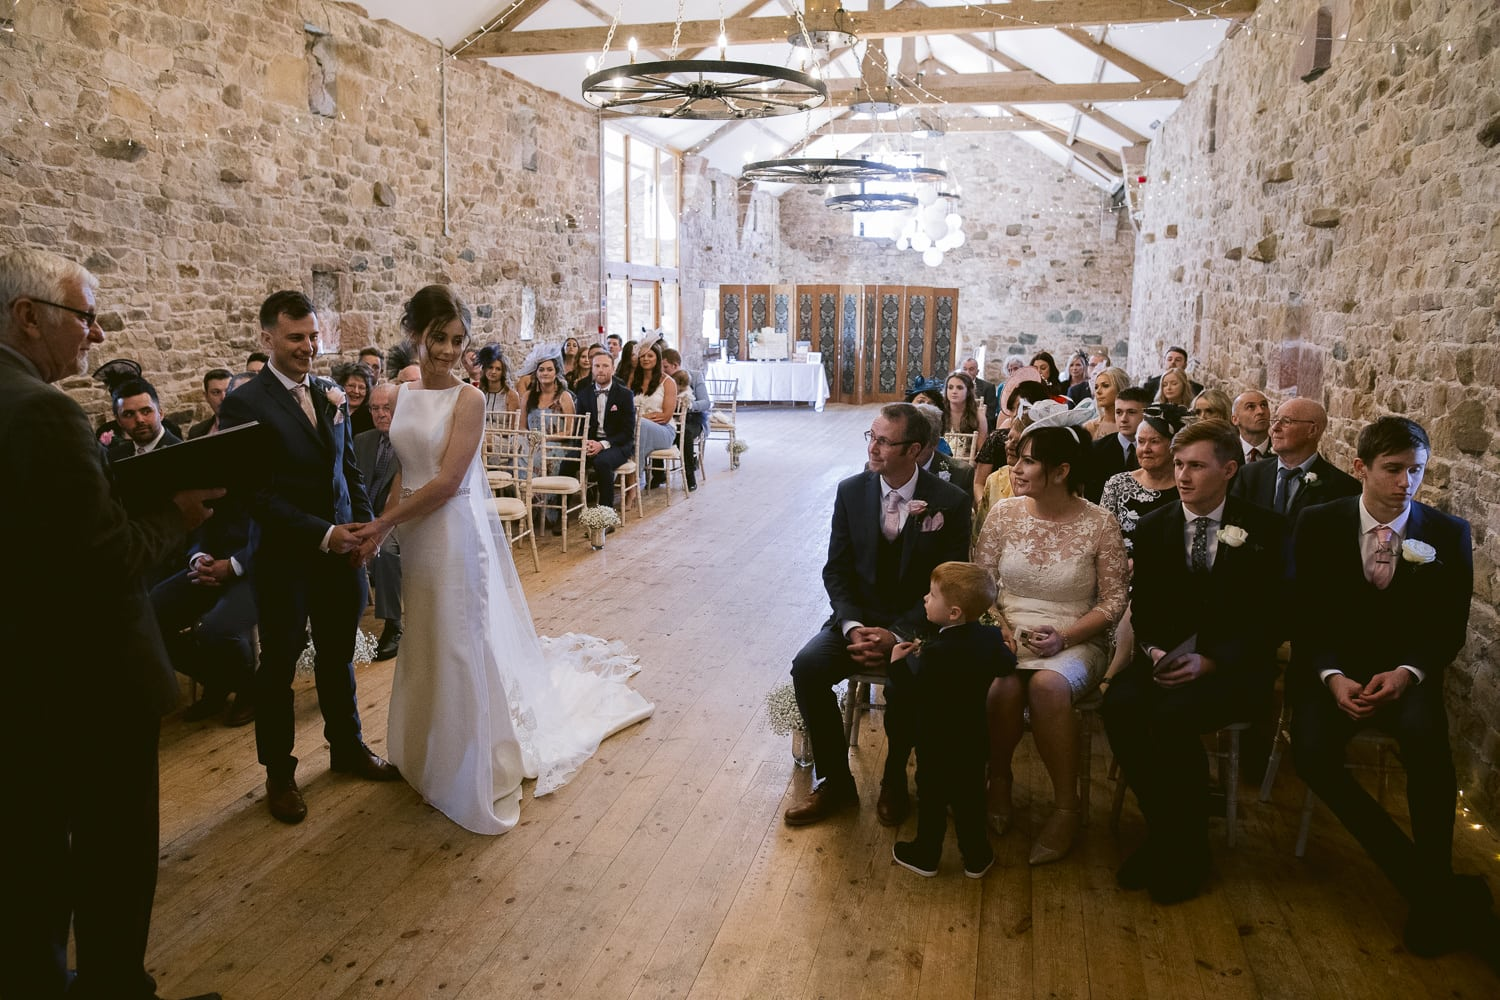 Wedding Venue with Bride and Groom Getting Married Photography Portrait